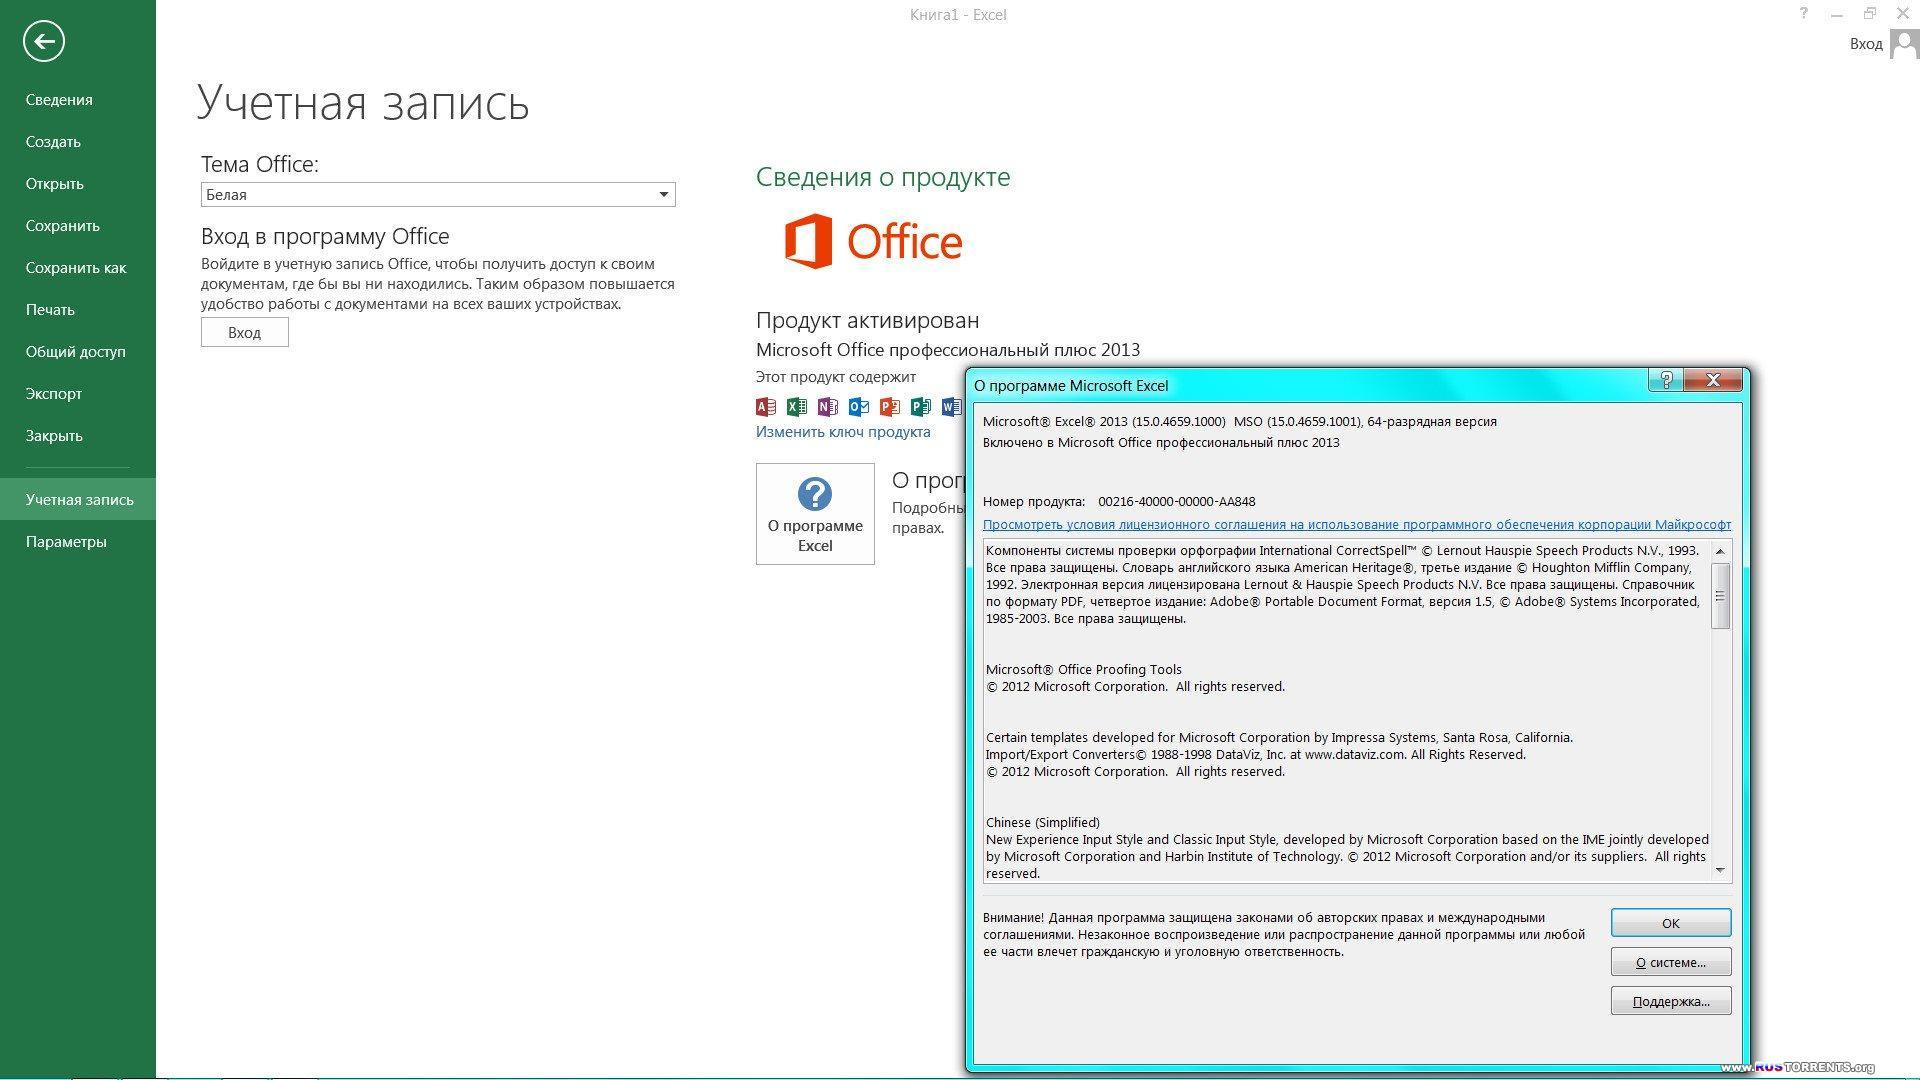 Microsoft Office 2013 SP1 Professional Plus 15.0.4659.1001 RePack by D!akov